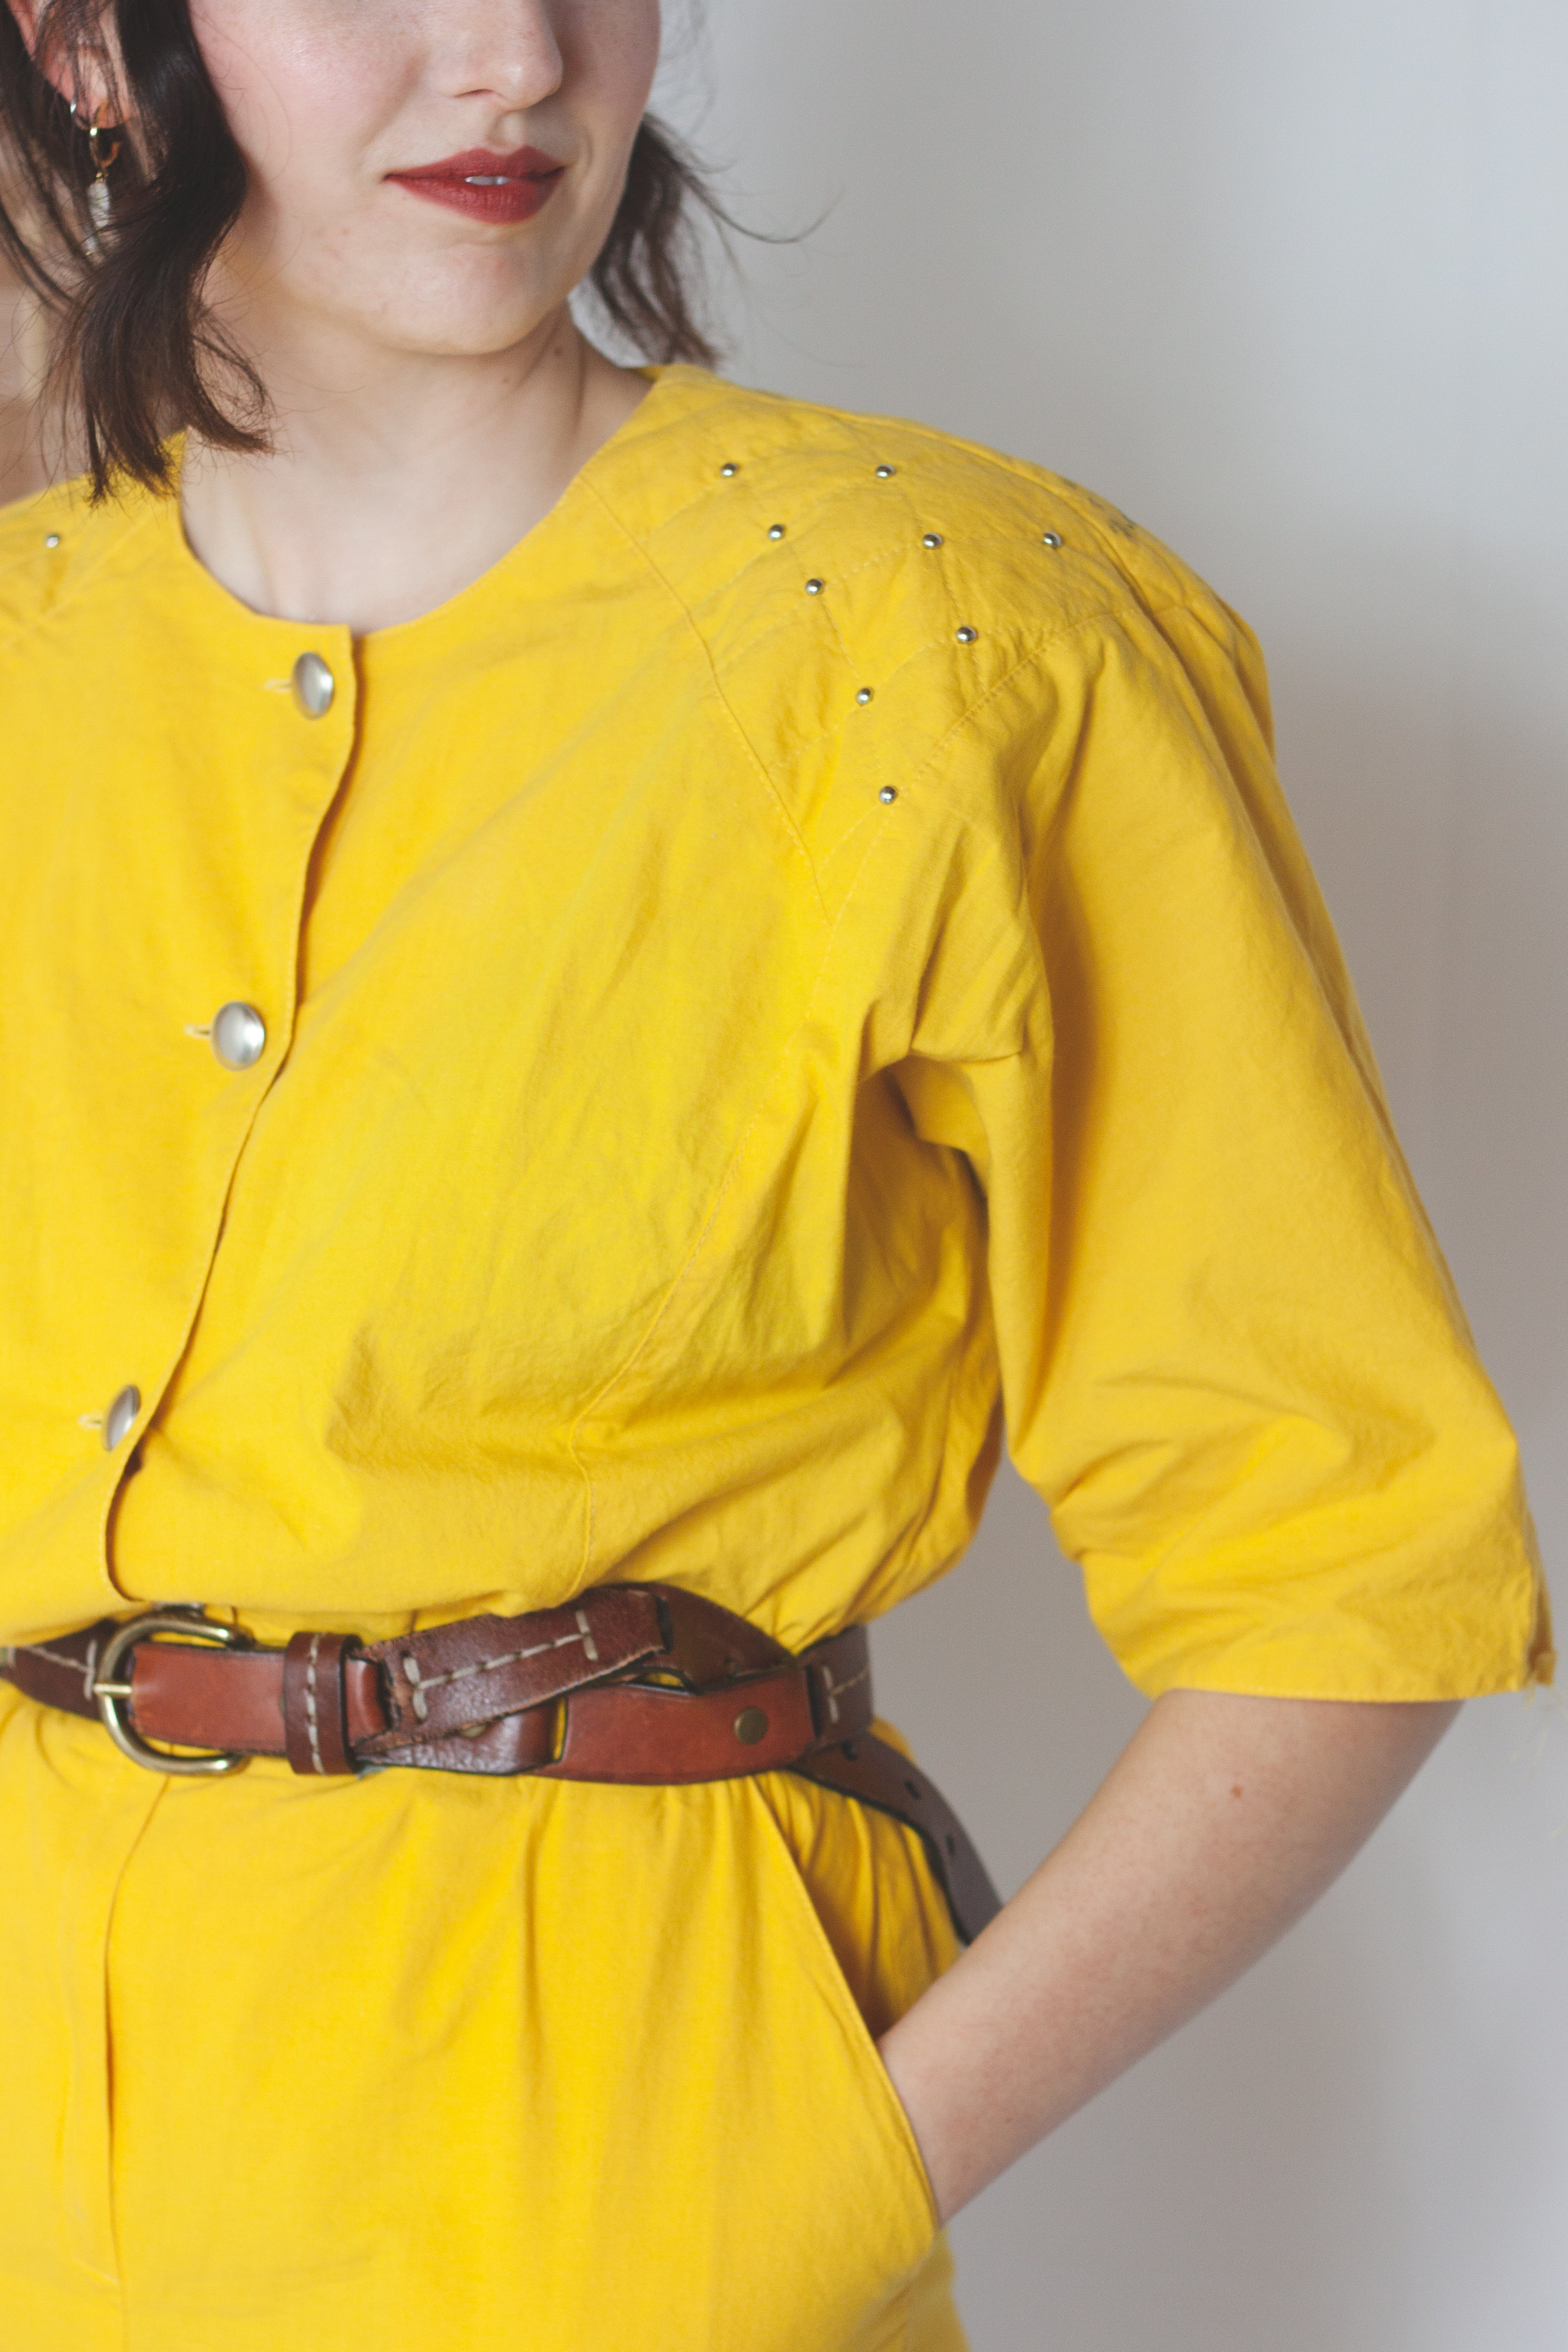 Buttercup yellow jumpsuit (S-M)